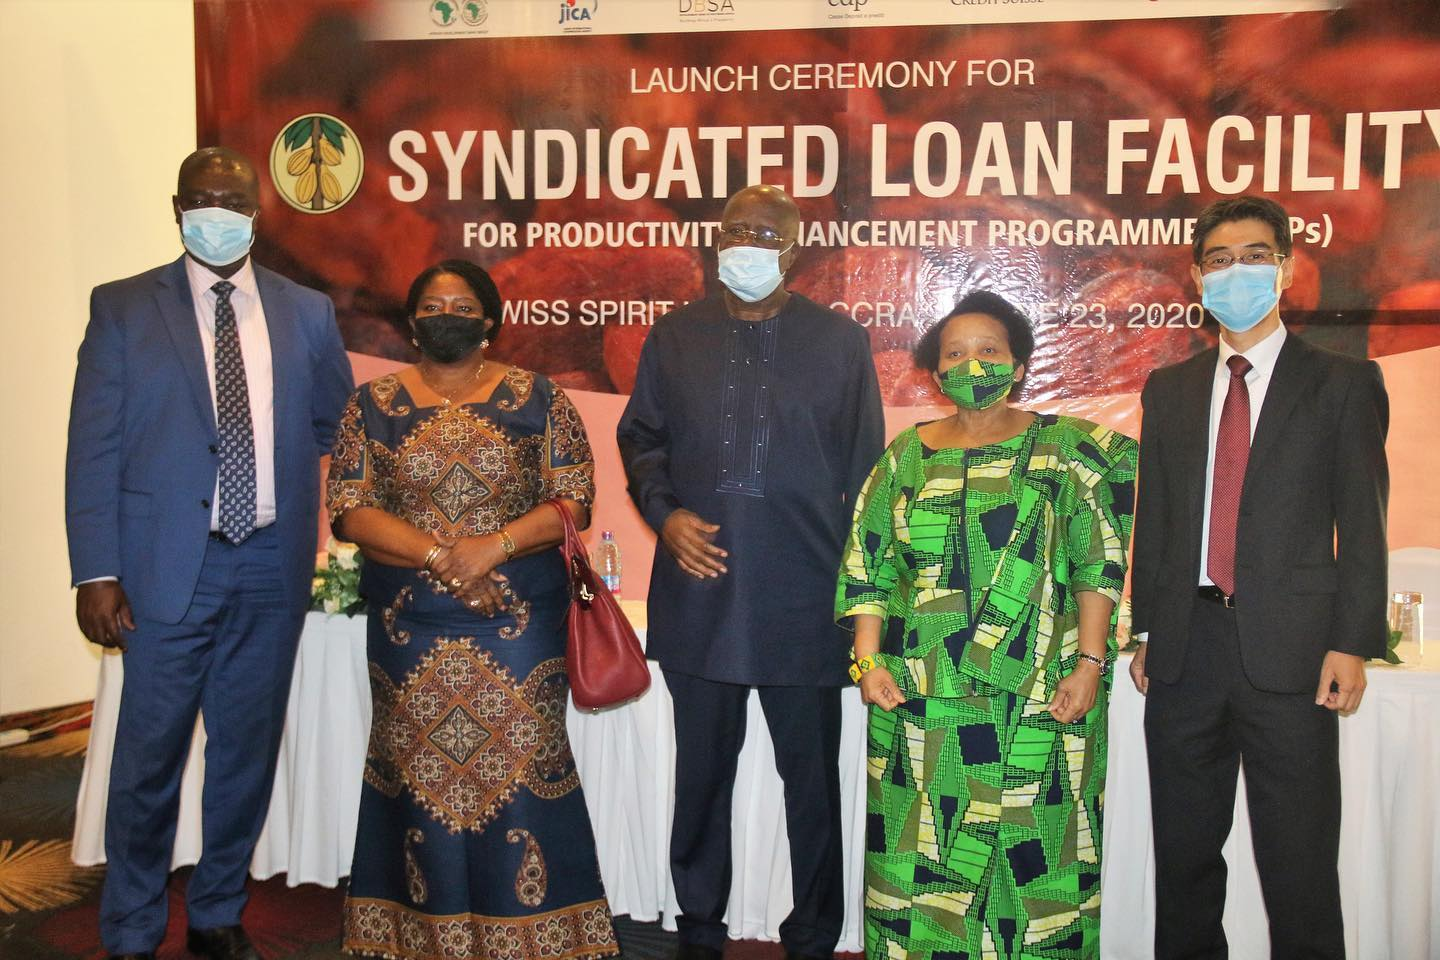 SCENES FROM LAUNCH CEREMONY FOR US$600 MILLION SYNDICATED LOAN FACILITY